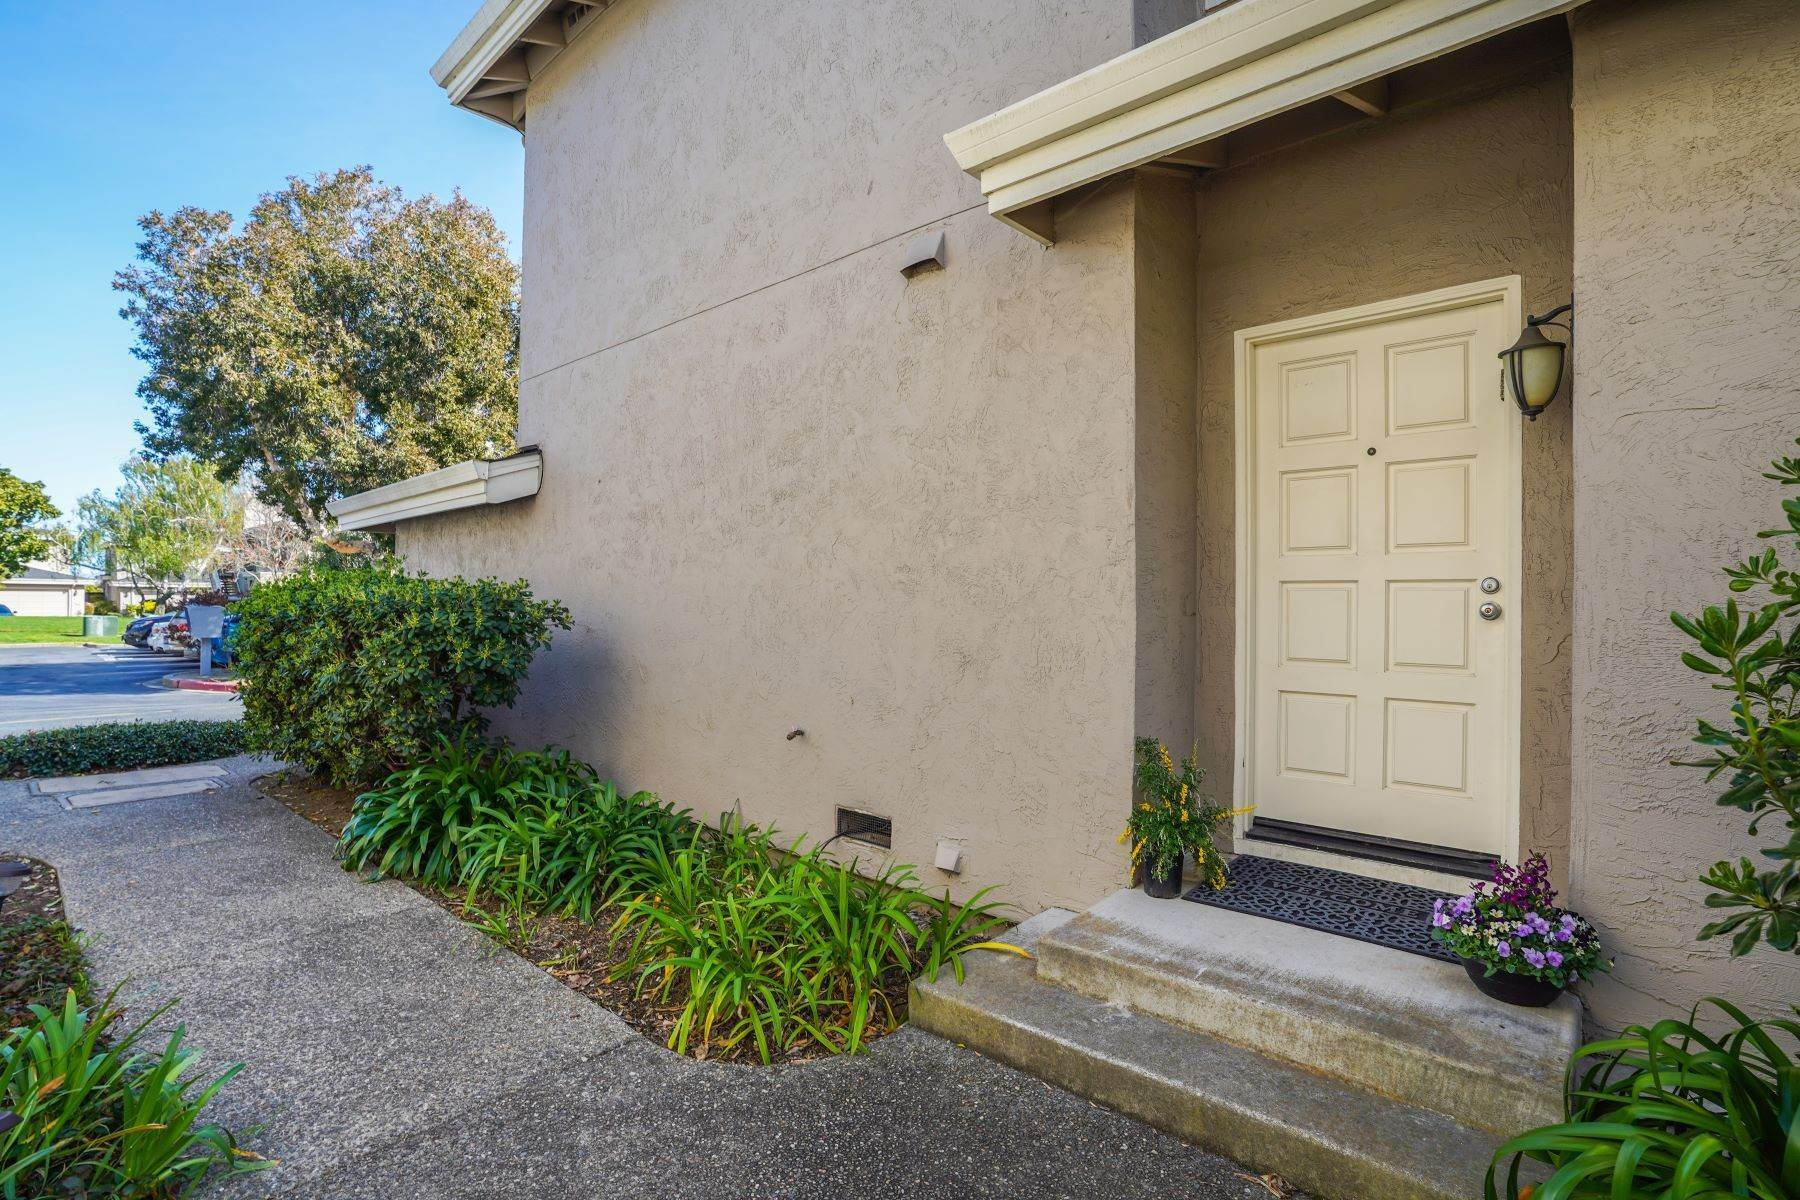 28. townhouses for Sale at Contemporary Townhome with Excellent Mid-Peninsula Location 126 Albacore Lane Foster City, California 94404 United States